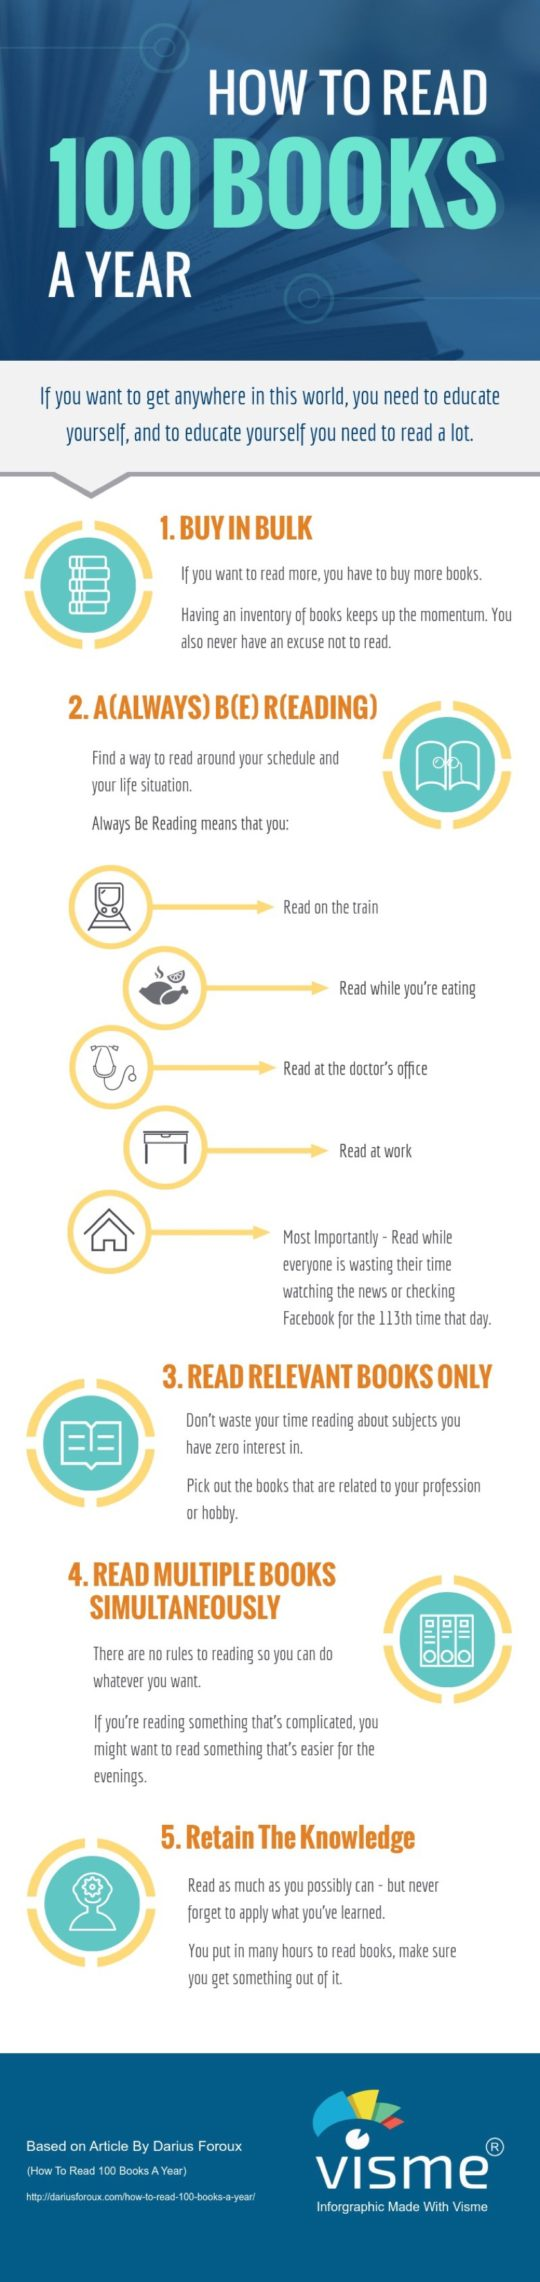 How to re100 books a year #infographic